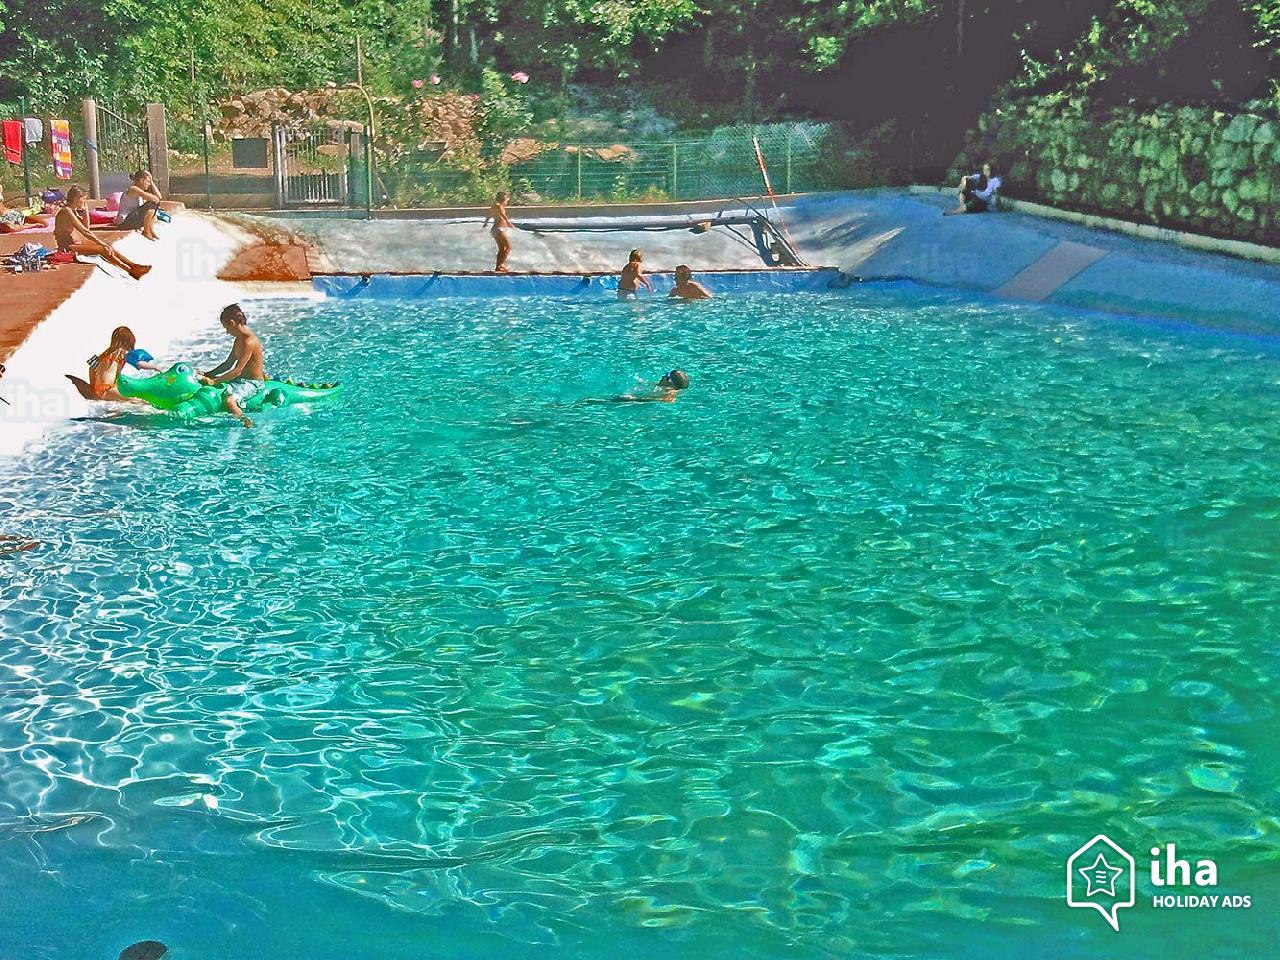 2 Bedrooms Bungalow For Rent From 2 To 6 People encequiconcerne Camping Pyrénées Avec Piscine